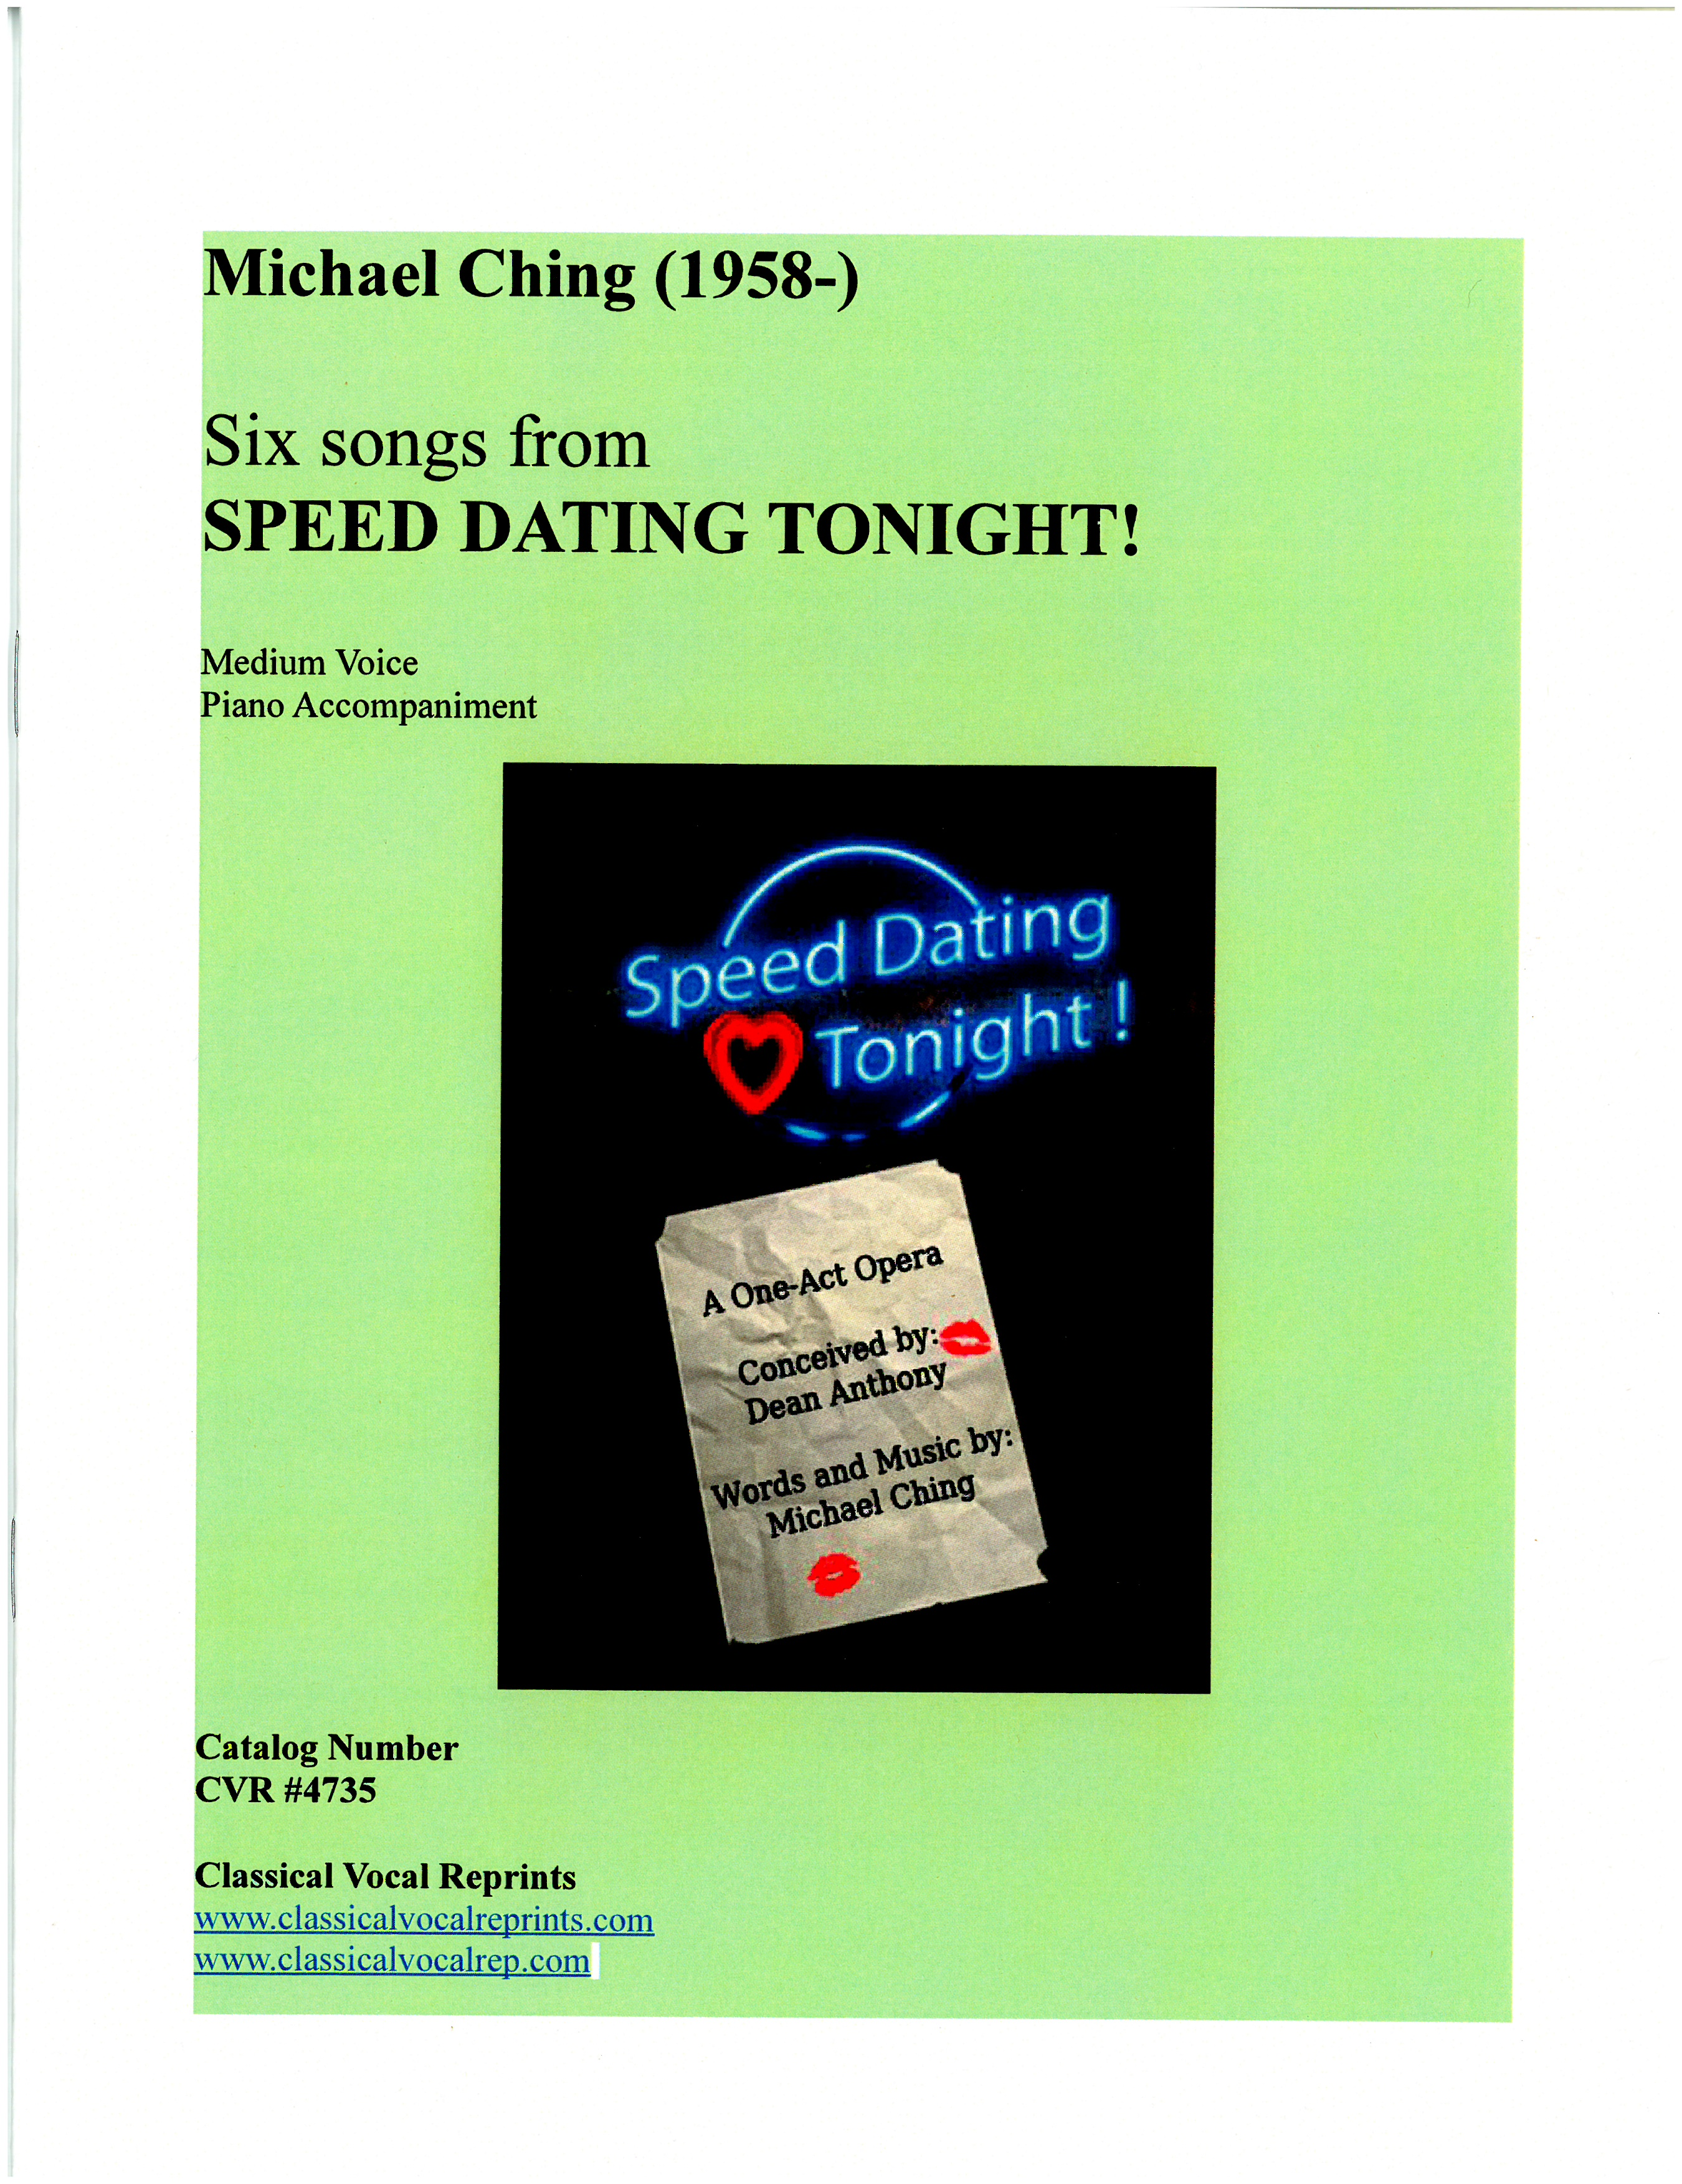 Speed dating michael ching